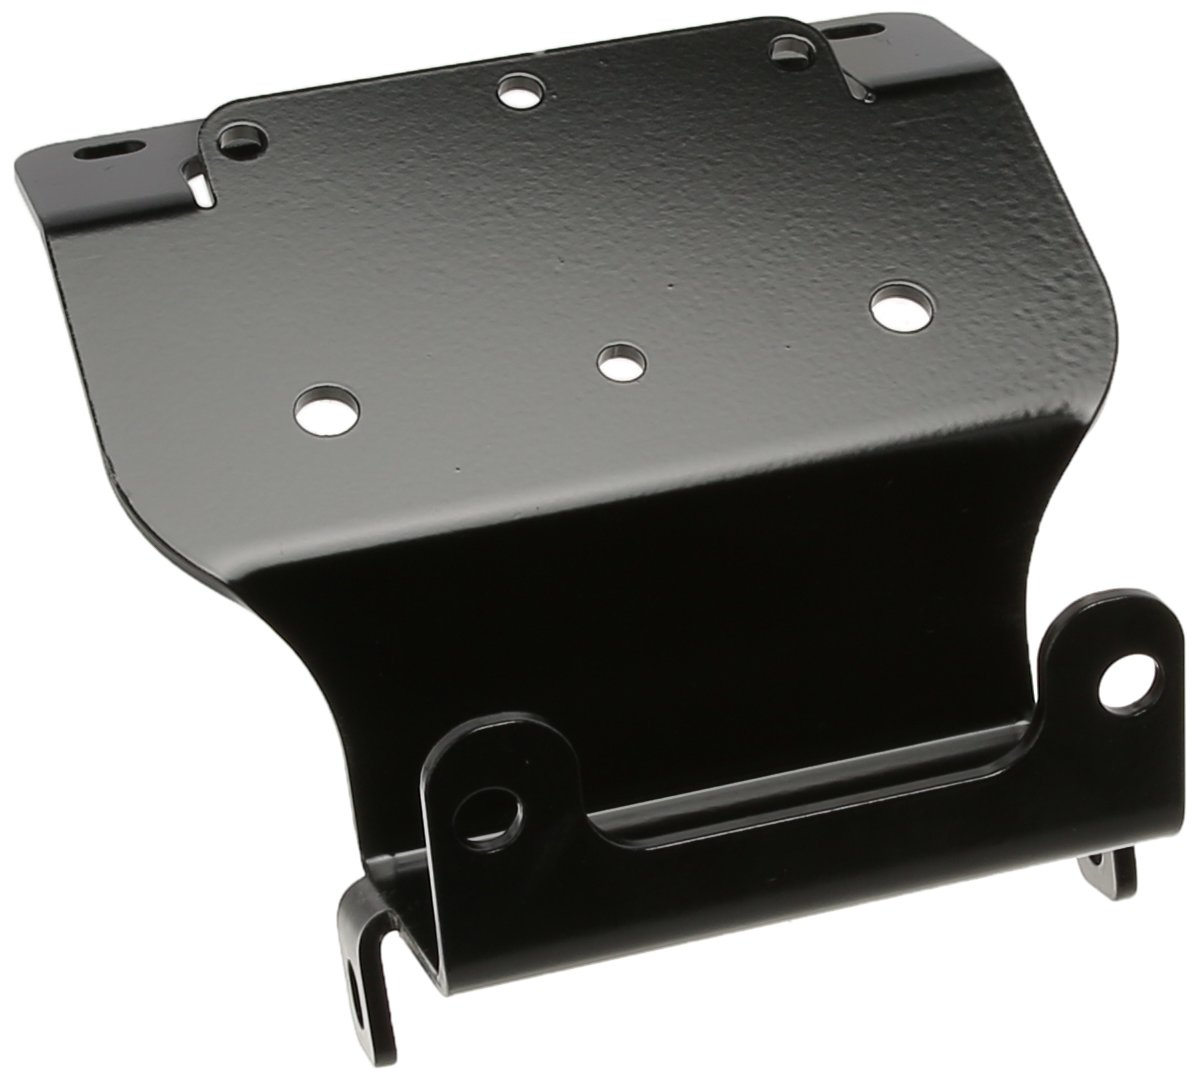 KFI Products 100665 Winch Mount for Honda 300 2x4/4x4 by KFI Products